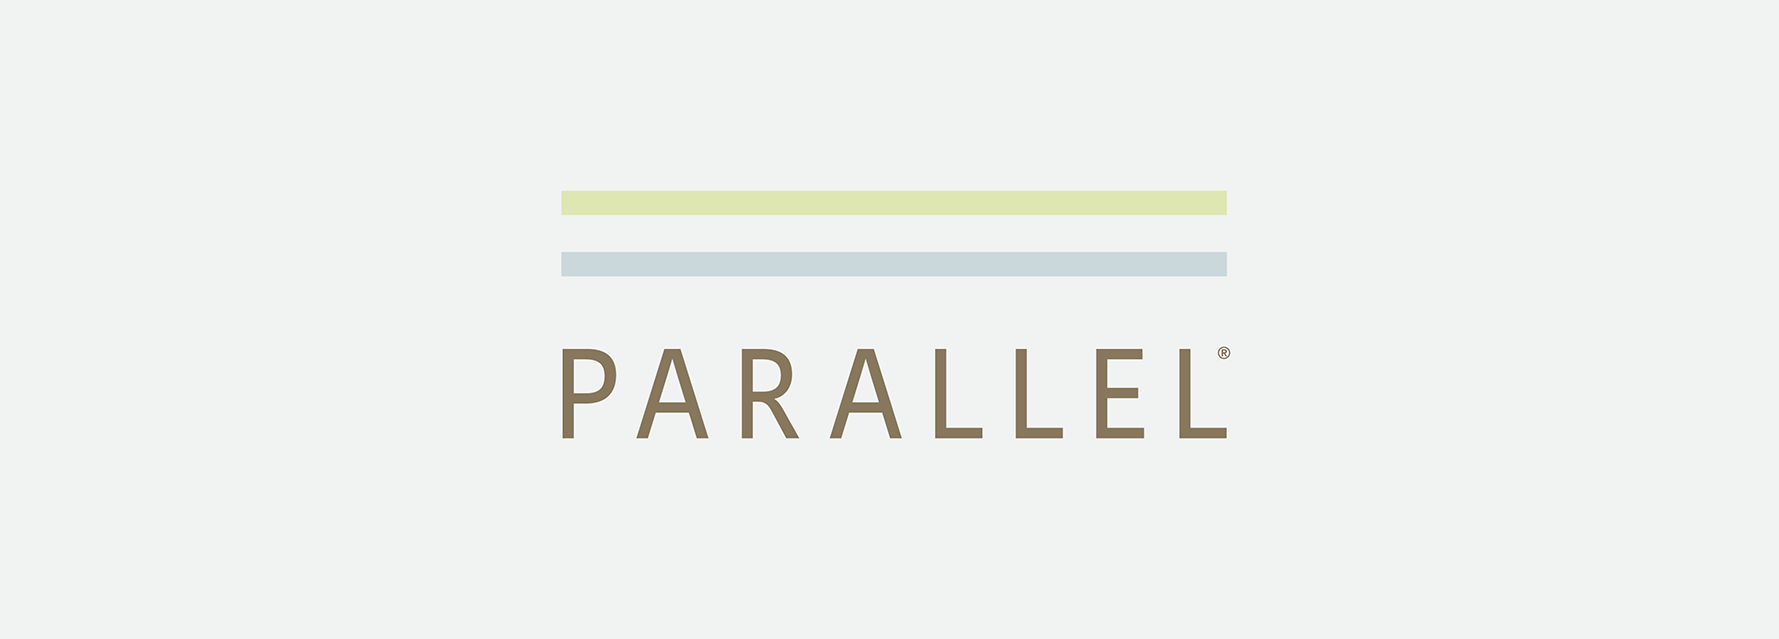 parallel.png